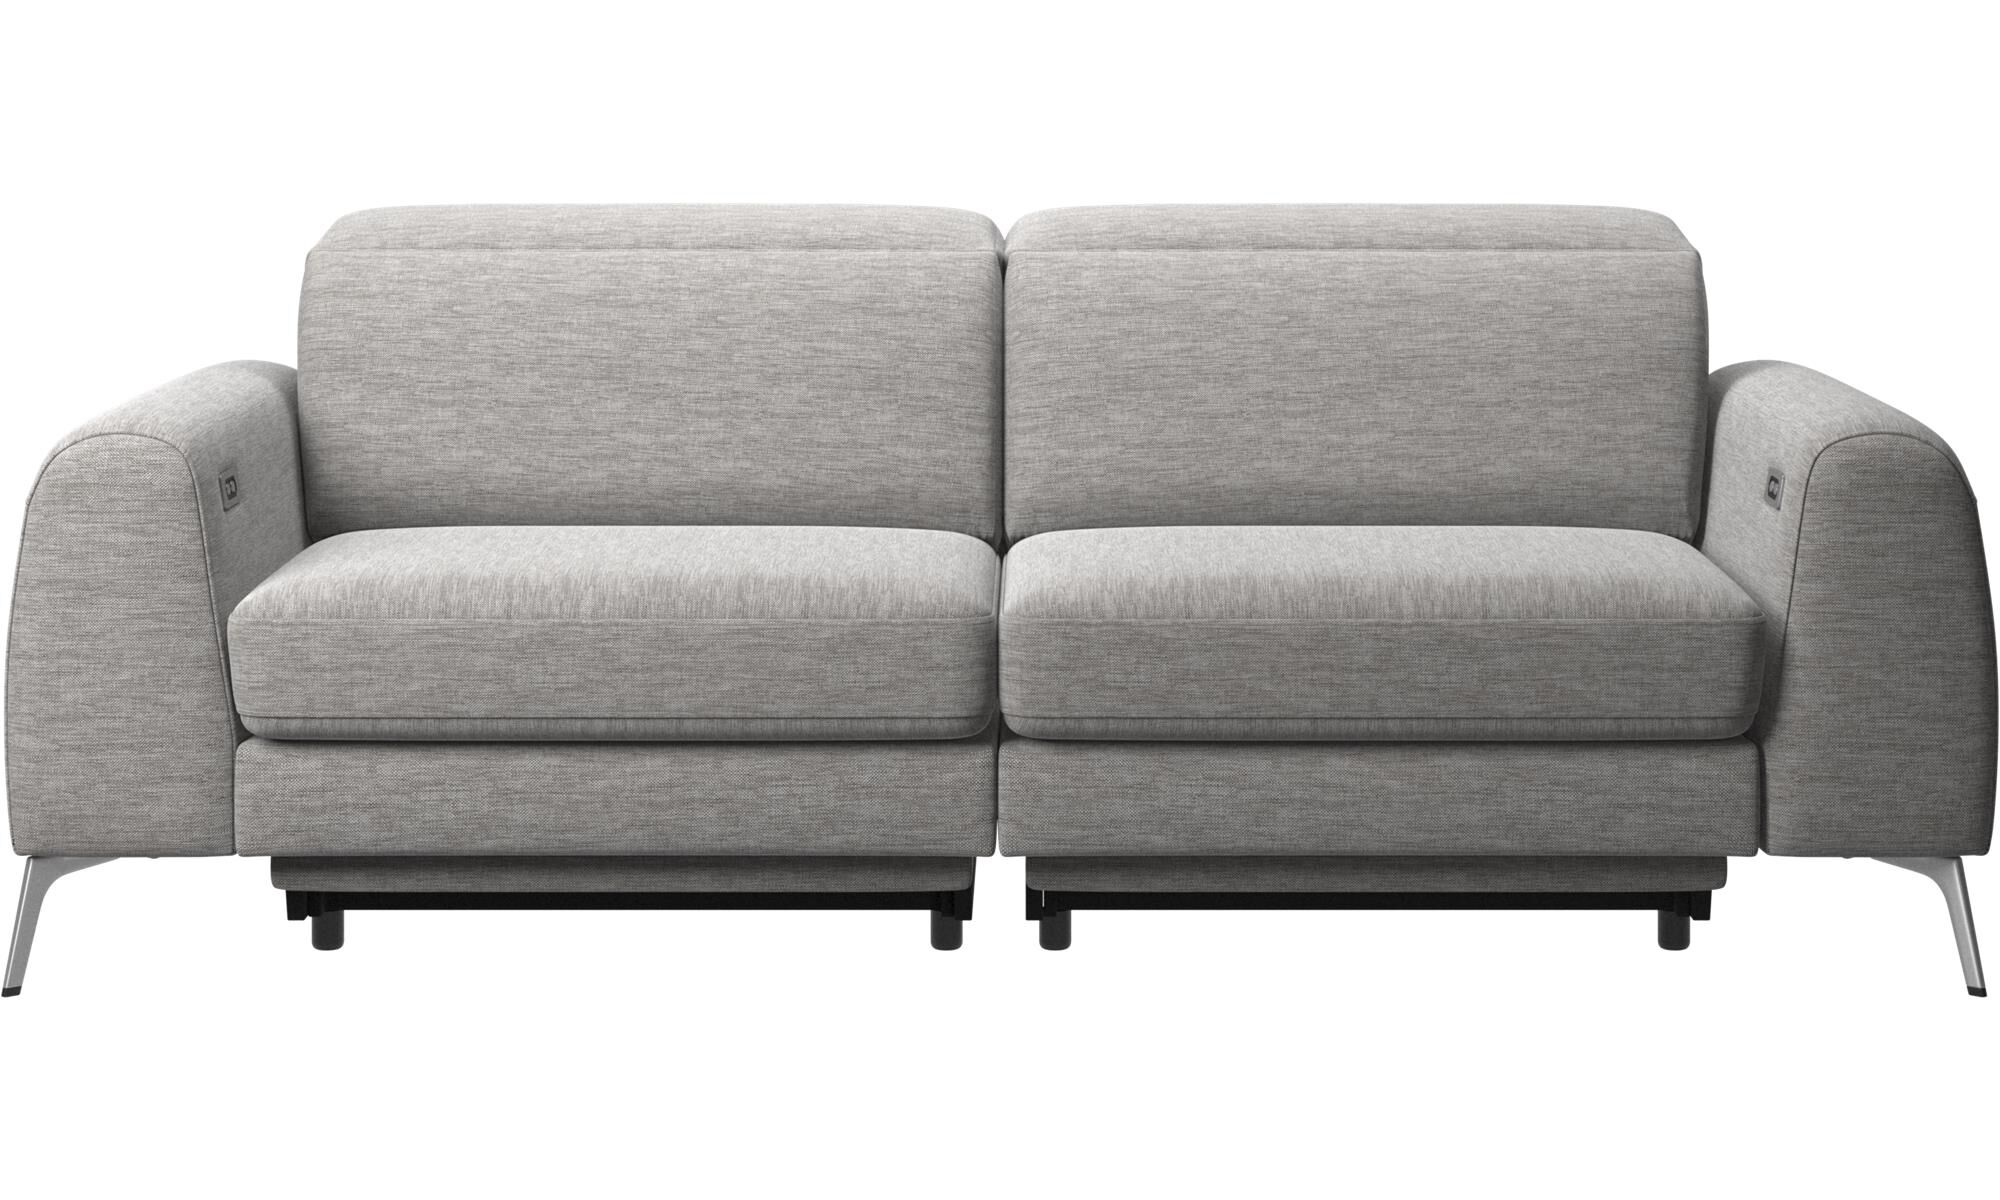 Madison Sofa With Electric Seat, Head And Foot Rest Motion (rechargeable  Lithium Battery Included)